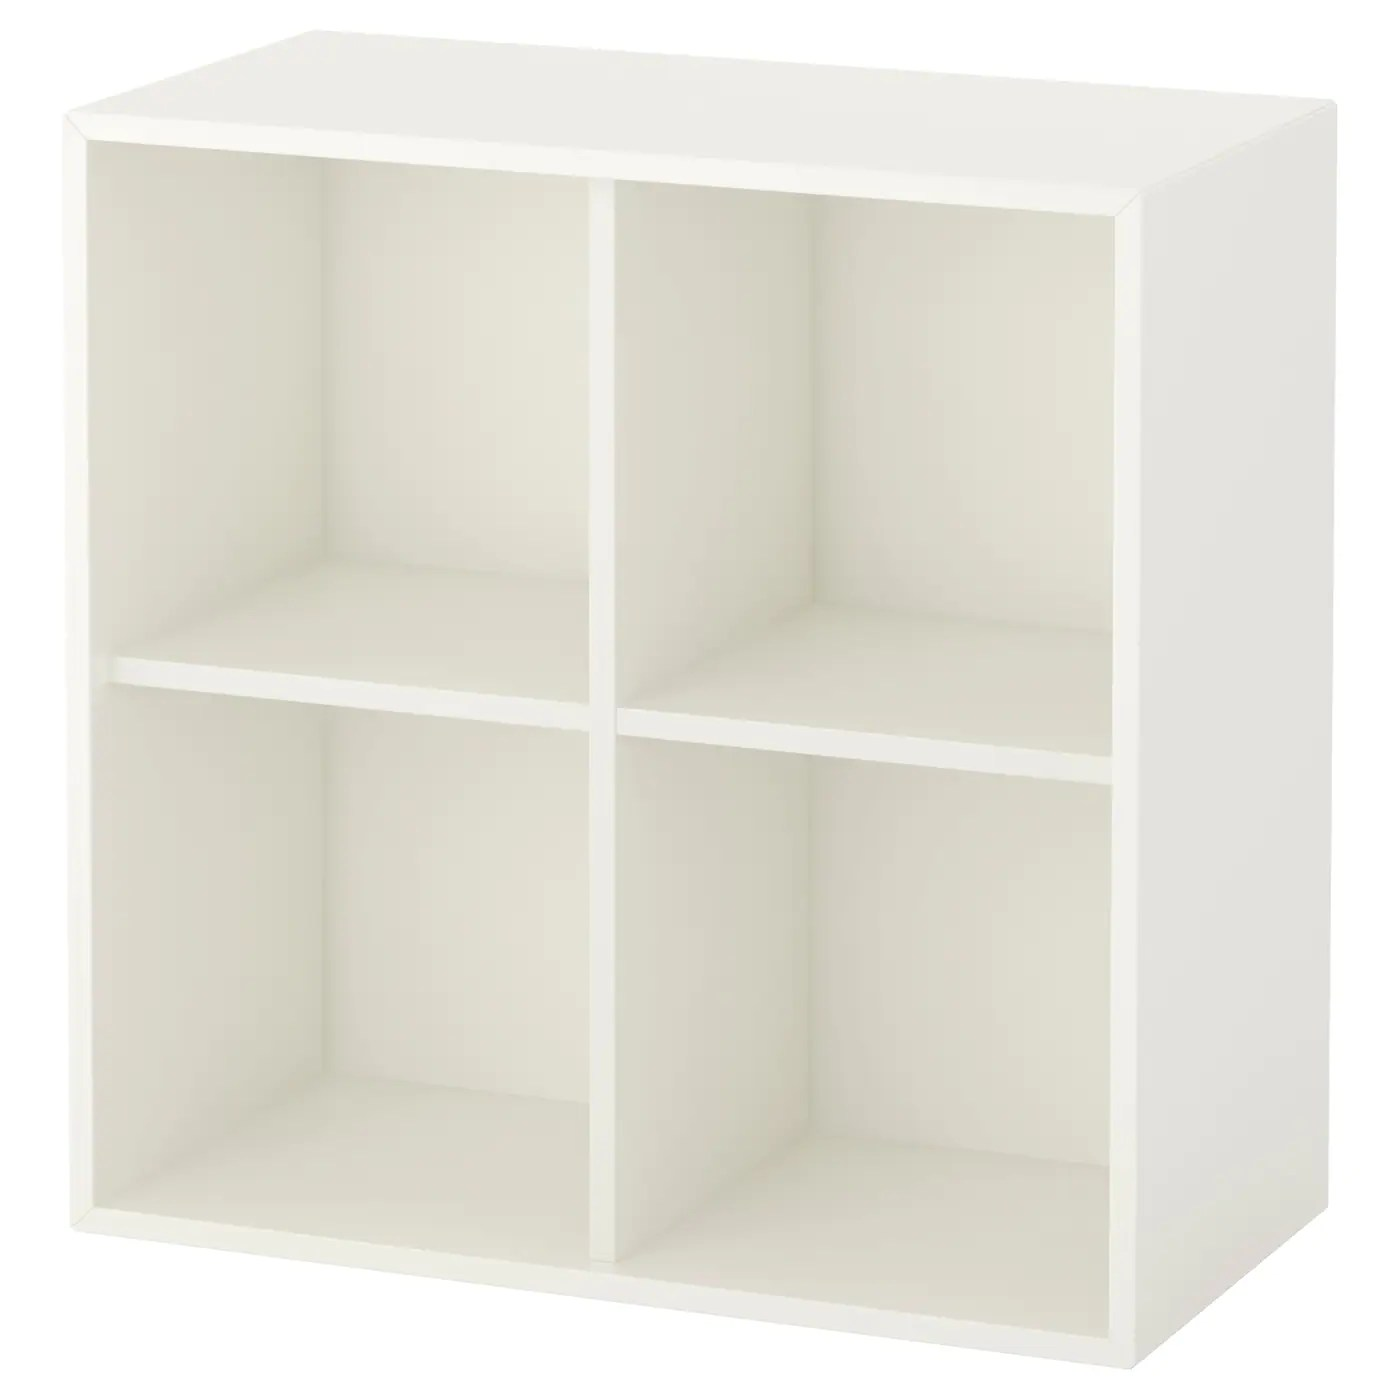 Meubles Cases Ikea Eket Wall Mounted Shelving Unit W 4 Comp White